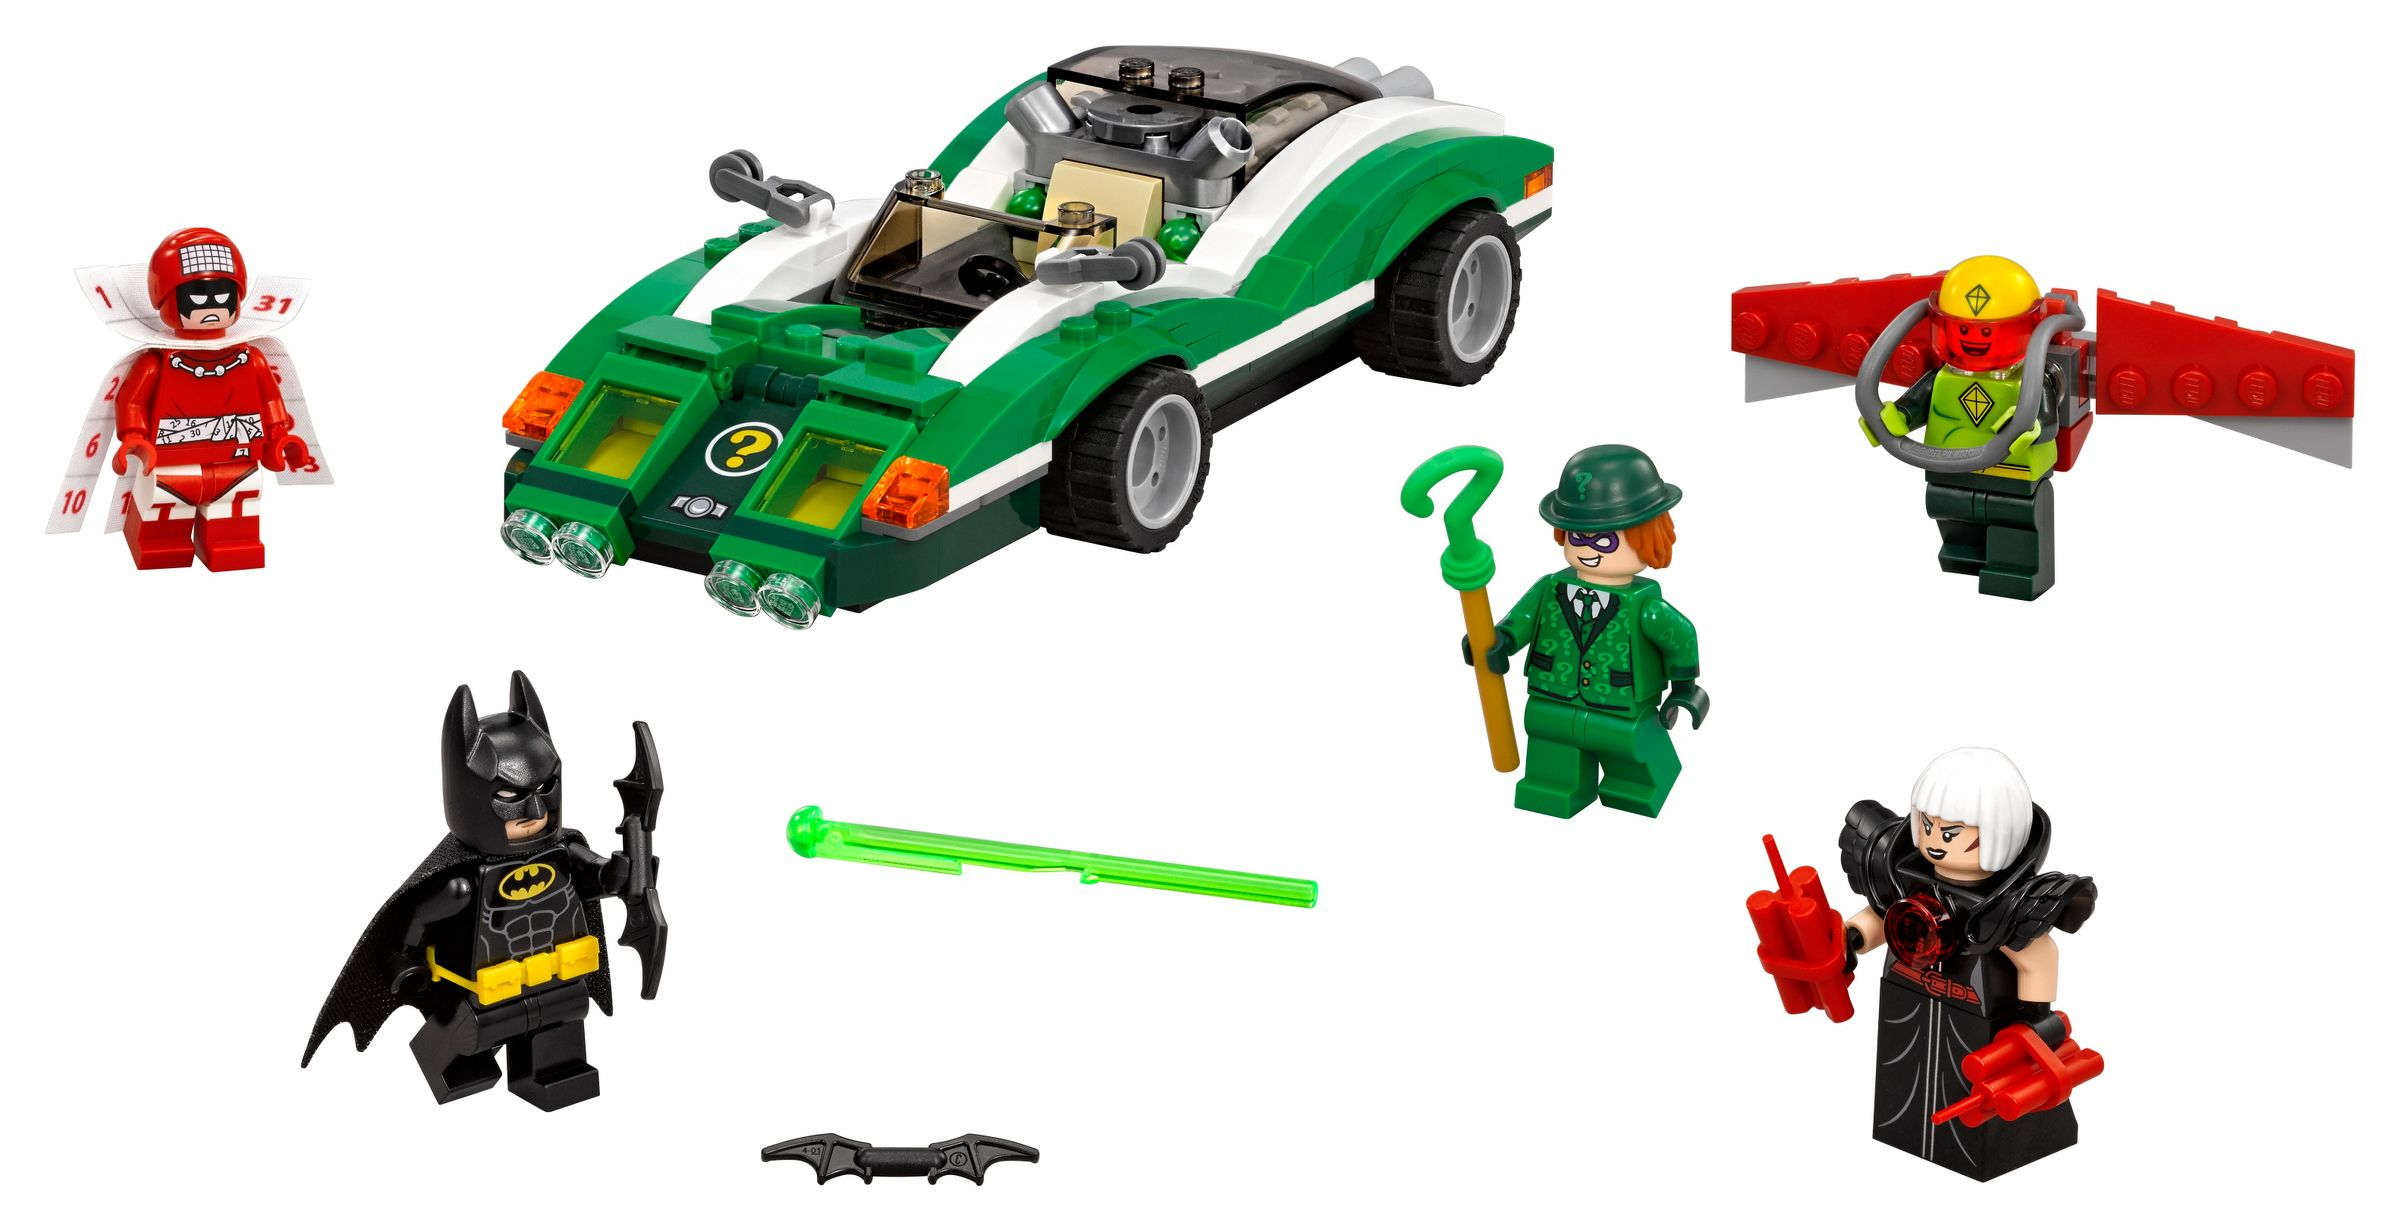 LEGO The LEGO Batman Movie 70903 The Riddler™: Riddle Racer